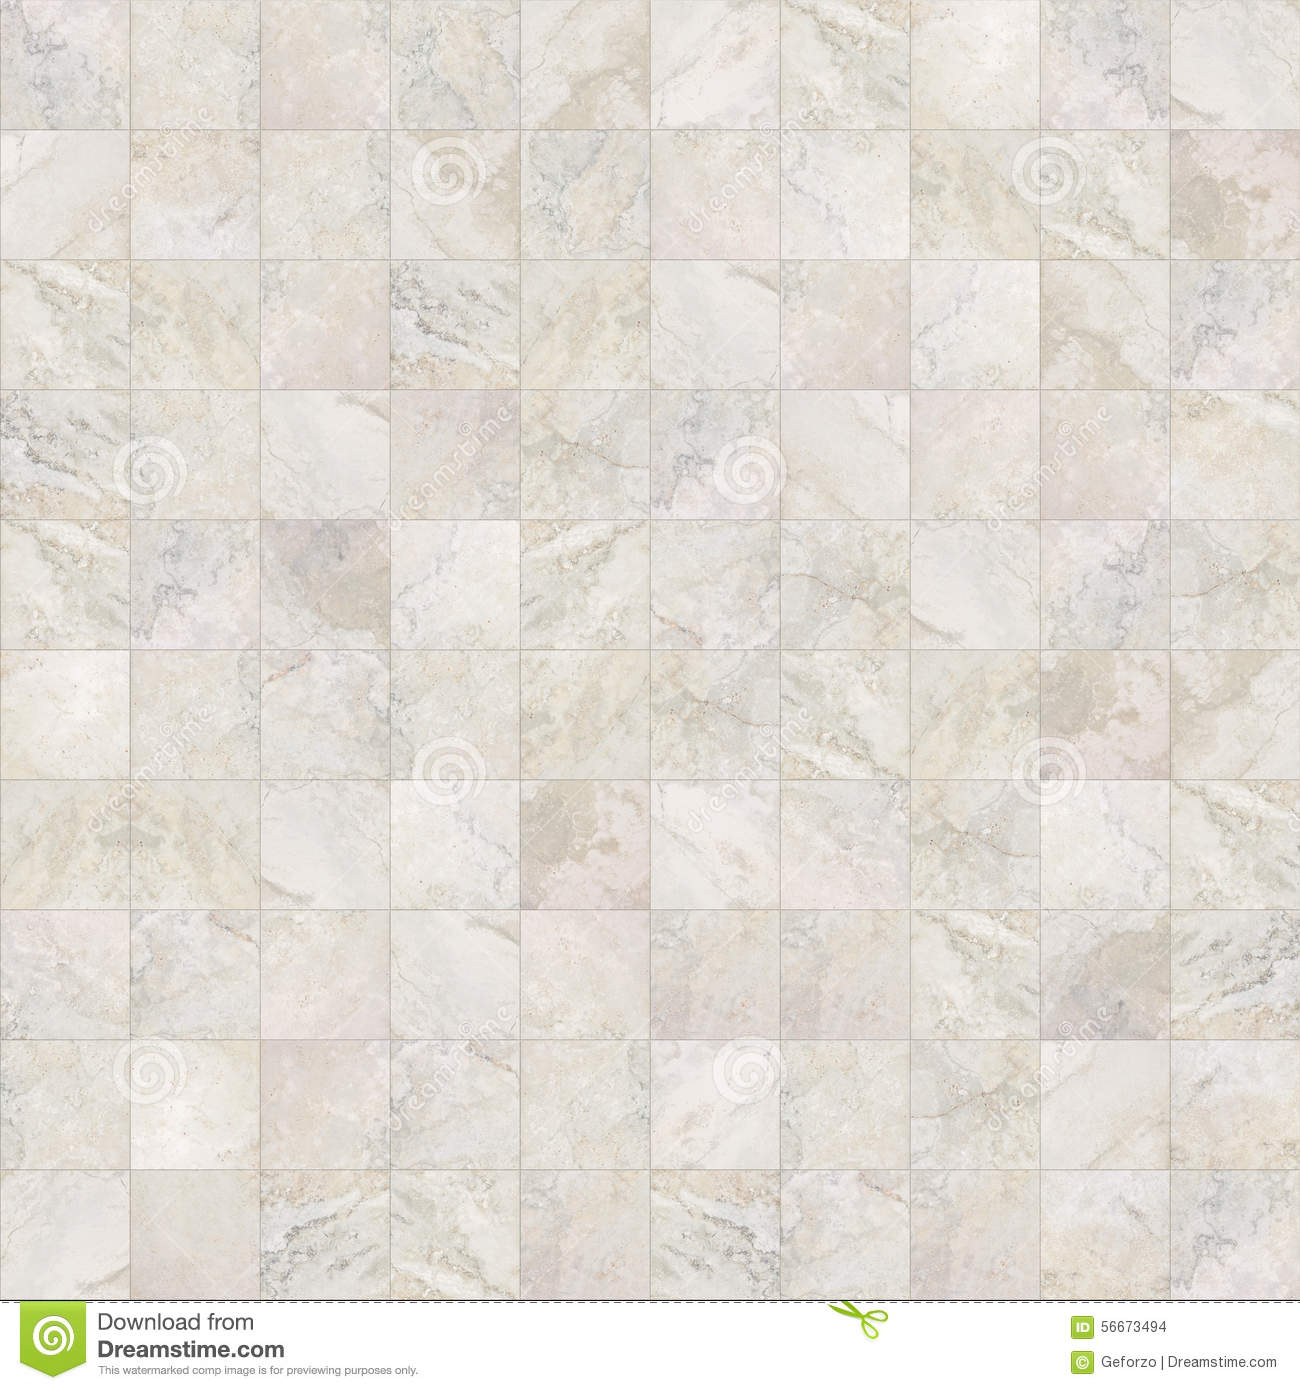 3d Floor Plan Design Square Seamless Marble Tiles Texture Stock Photo Image